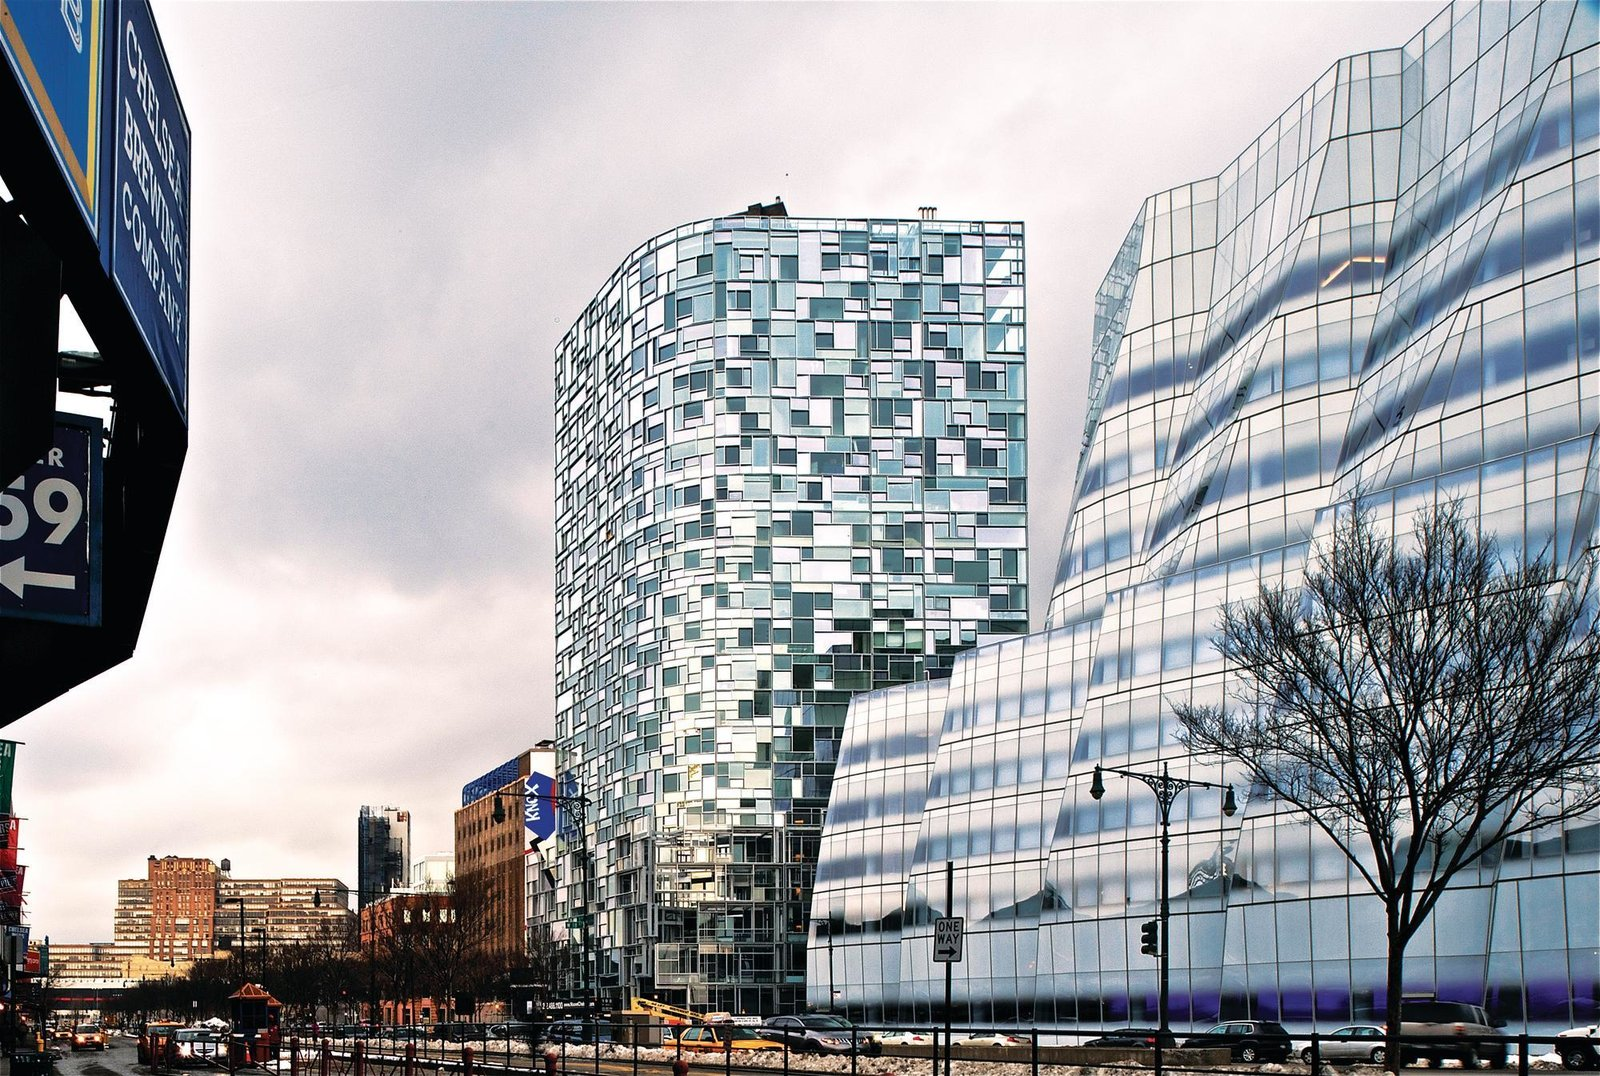 Jean Nouvel called this story 23-story residential tower a  Photo 4 of 11 in 10 Jean Nouvel Buildings We Love